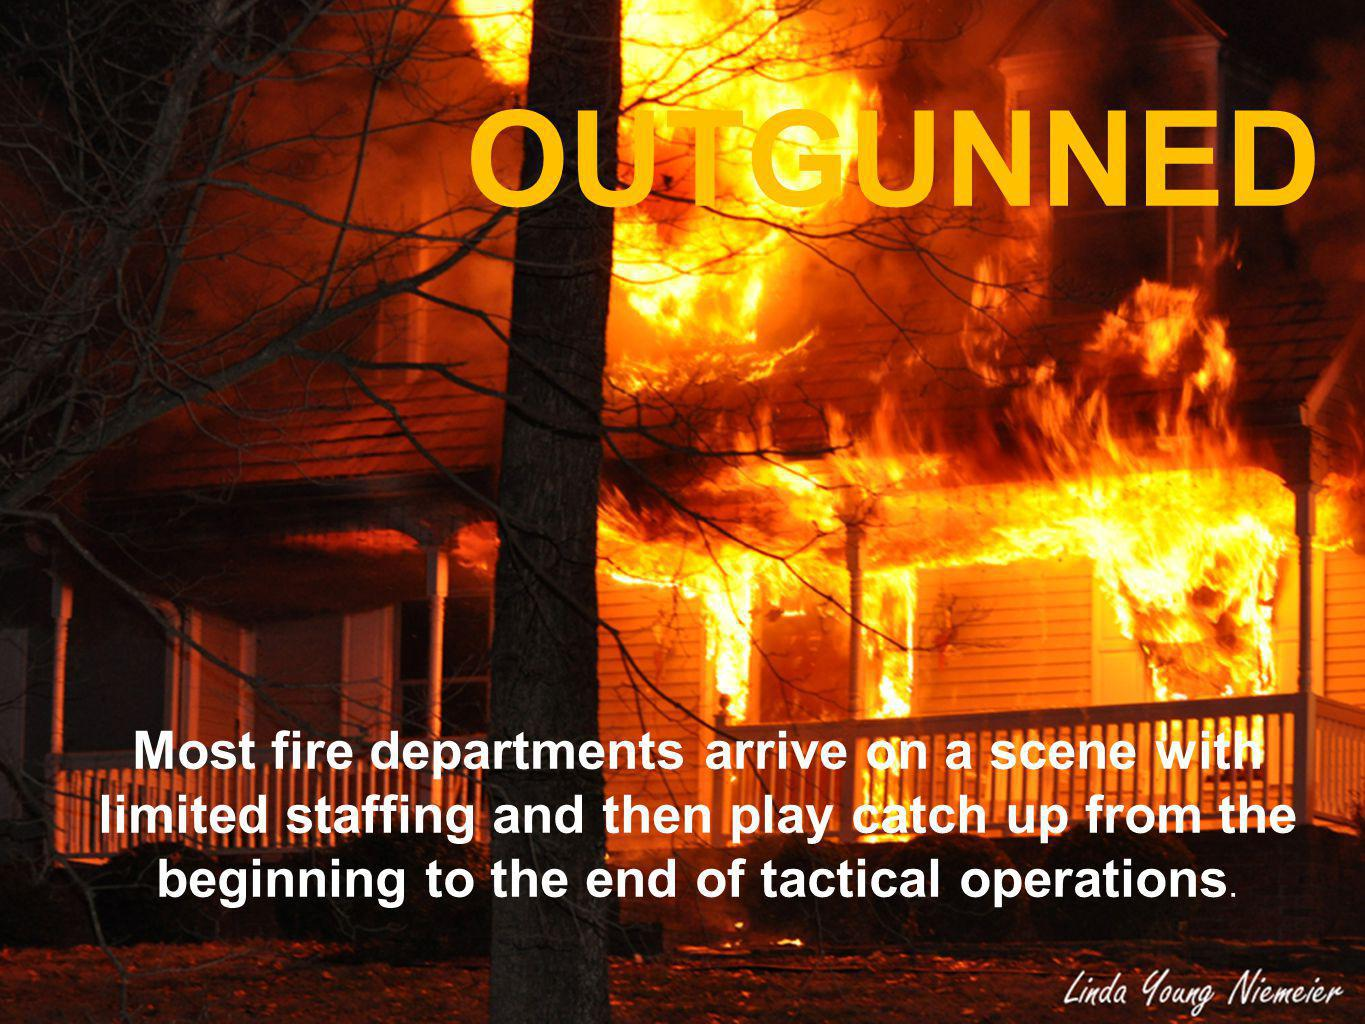 OUTGUNNED Most fire departments arrive on a scene with limited staffing and then play catch up from the beginning to the end of tactical operations.